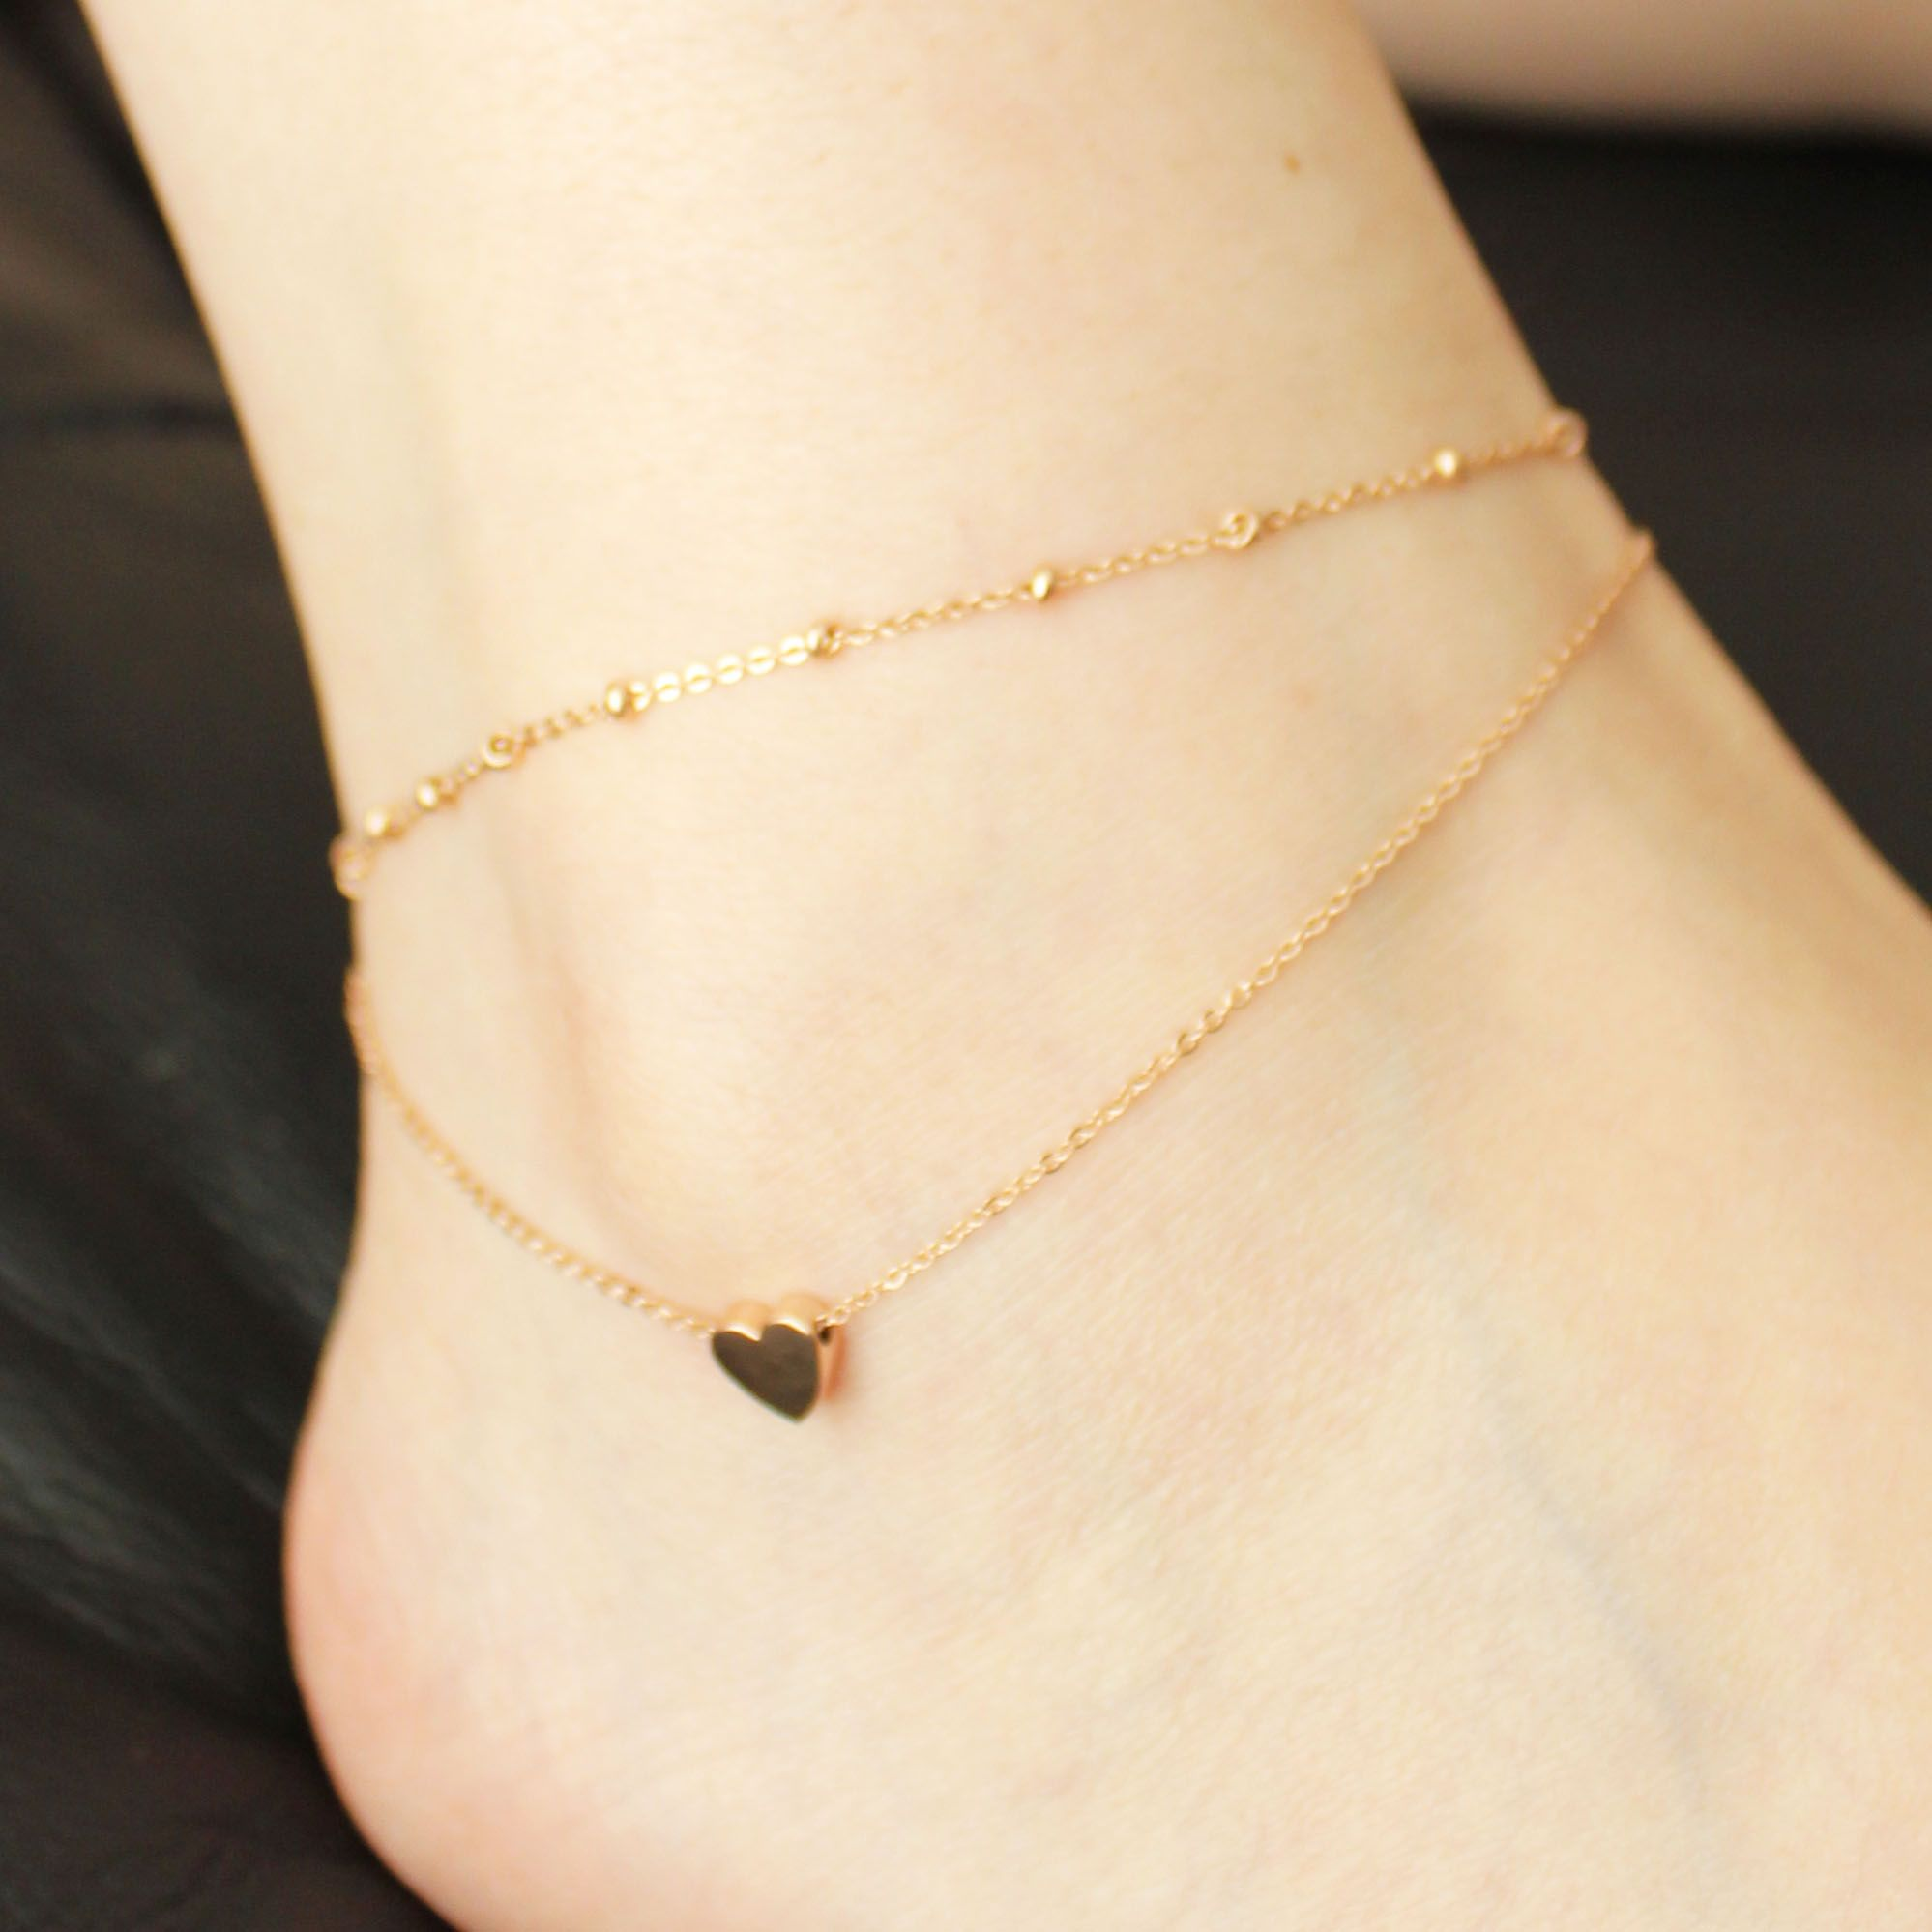 hkya fullxfull with submissive silver heart anklet clasp discreet sterling listing bdsm floating slave il